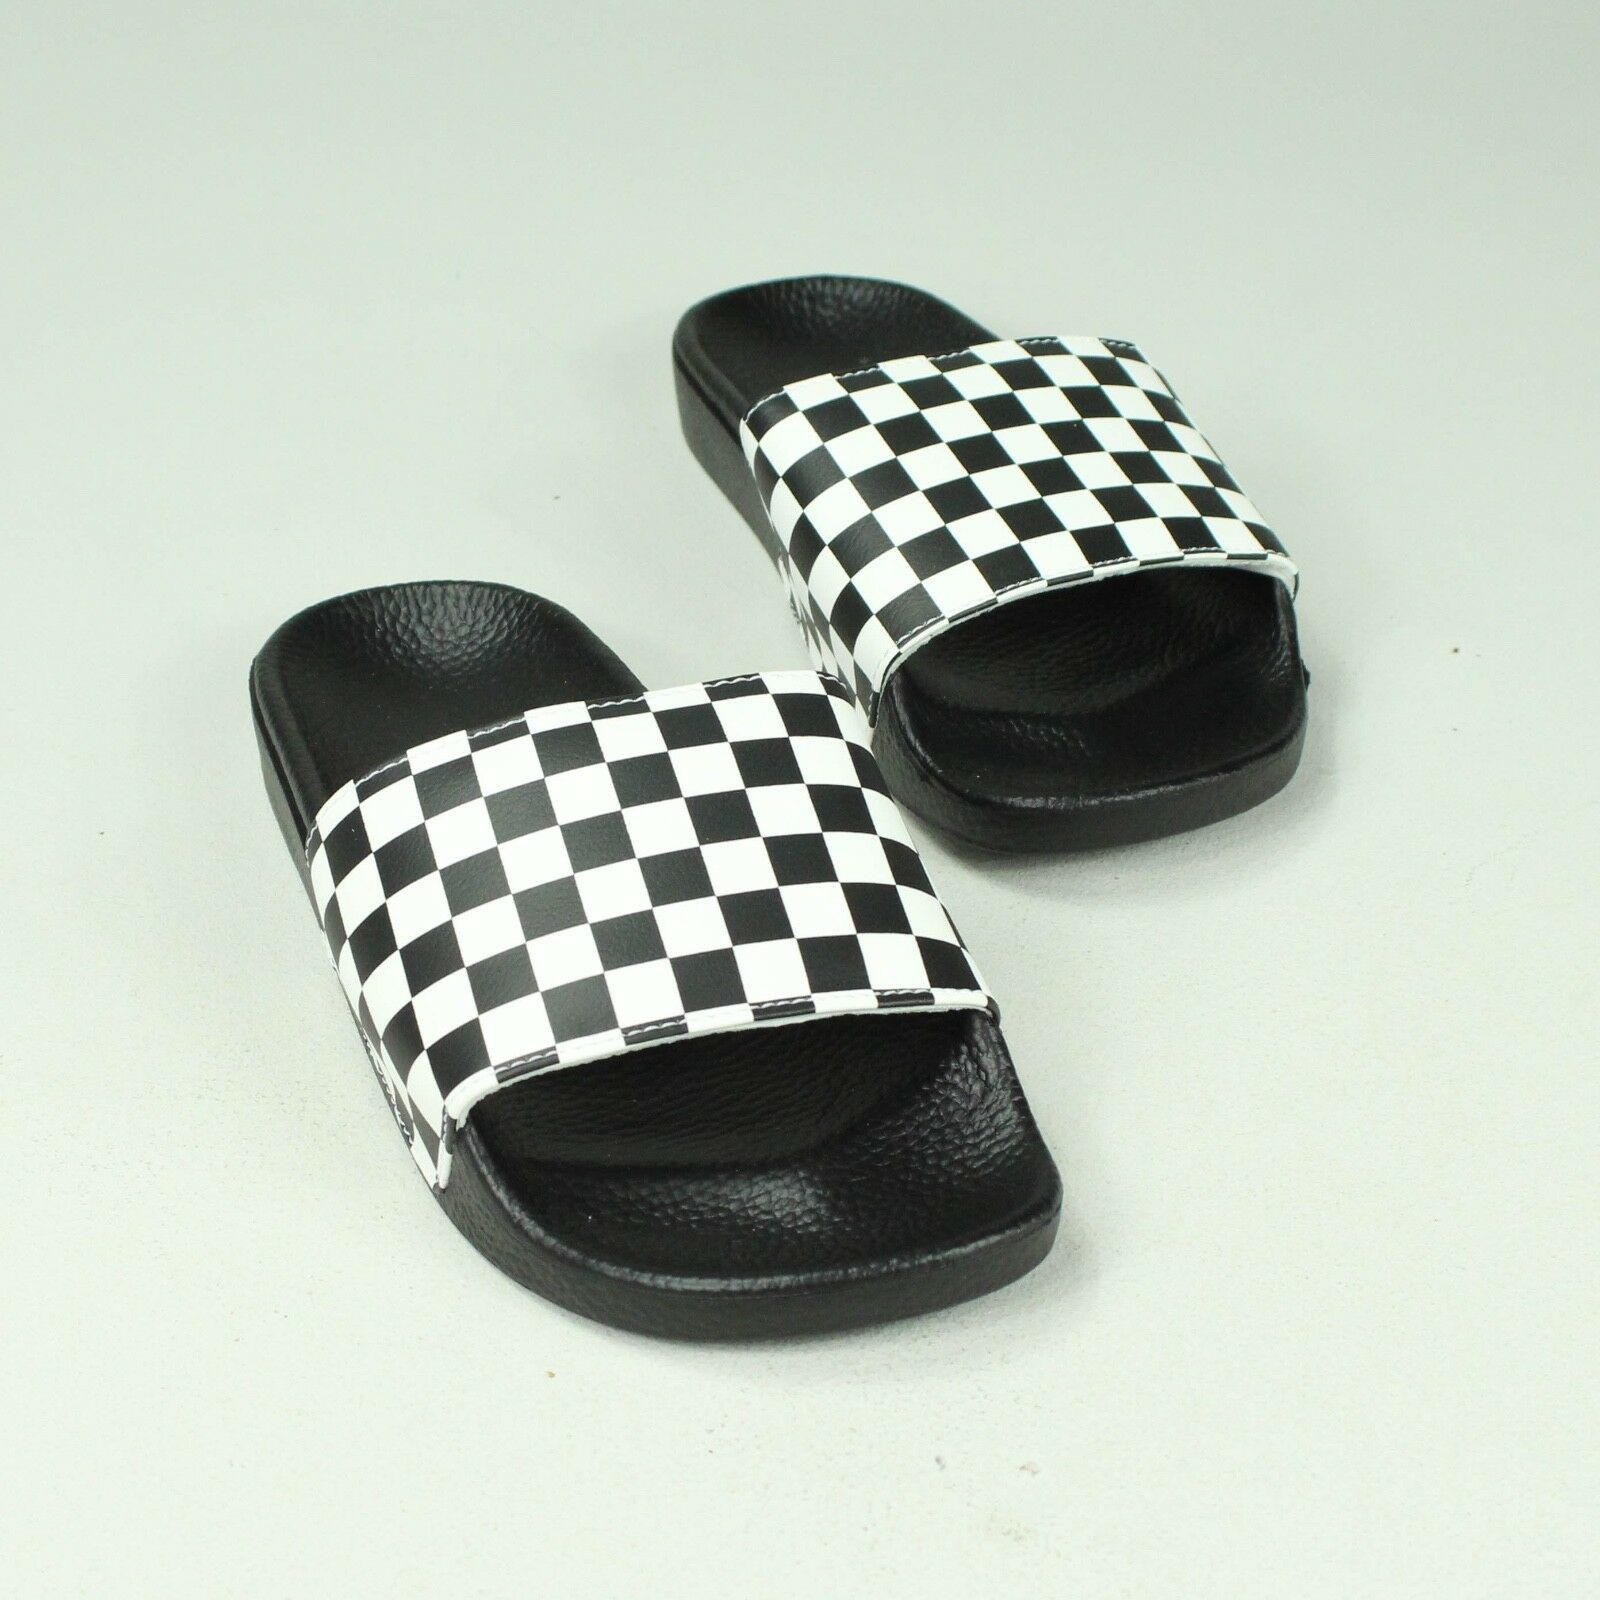 15a522bd5928b0 Details about Vans Slip-On Check Sandals Sliders Slipper Brand New in UK Size  7